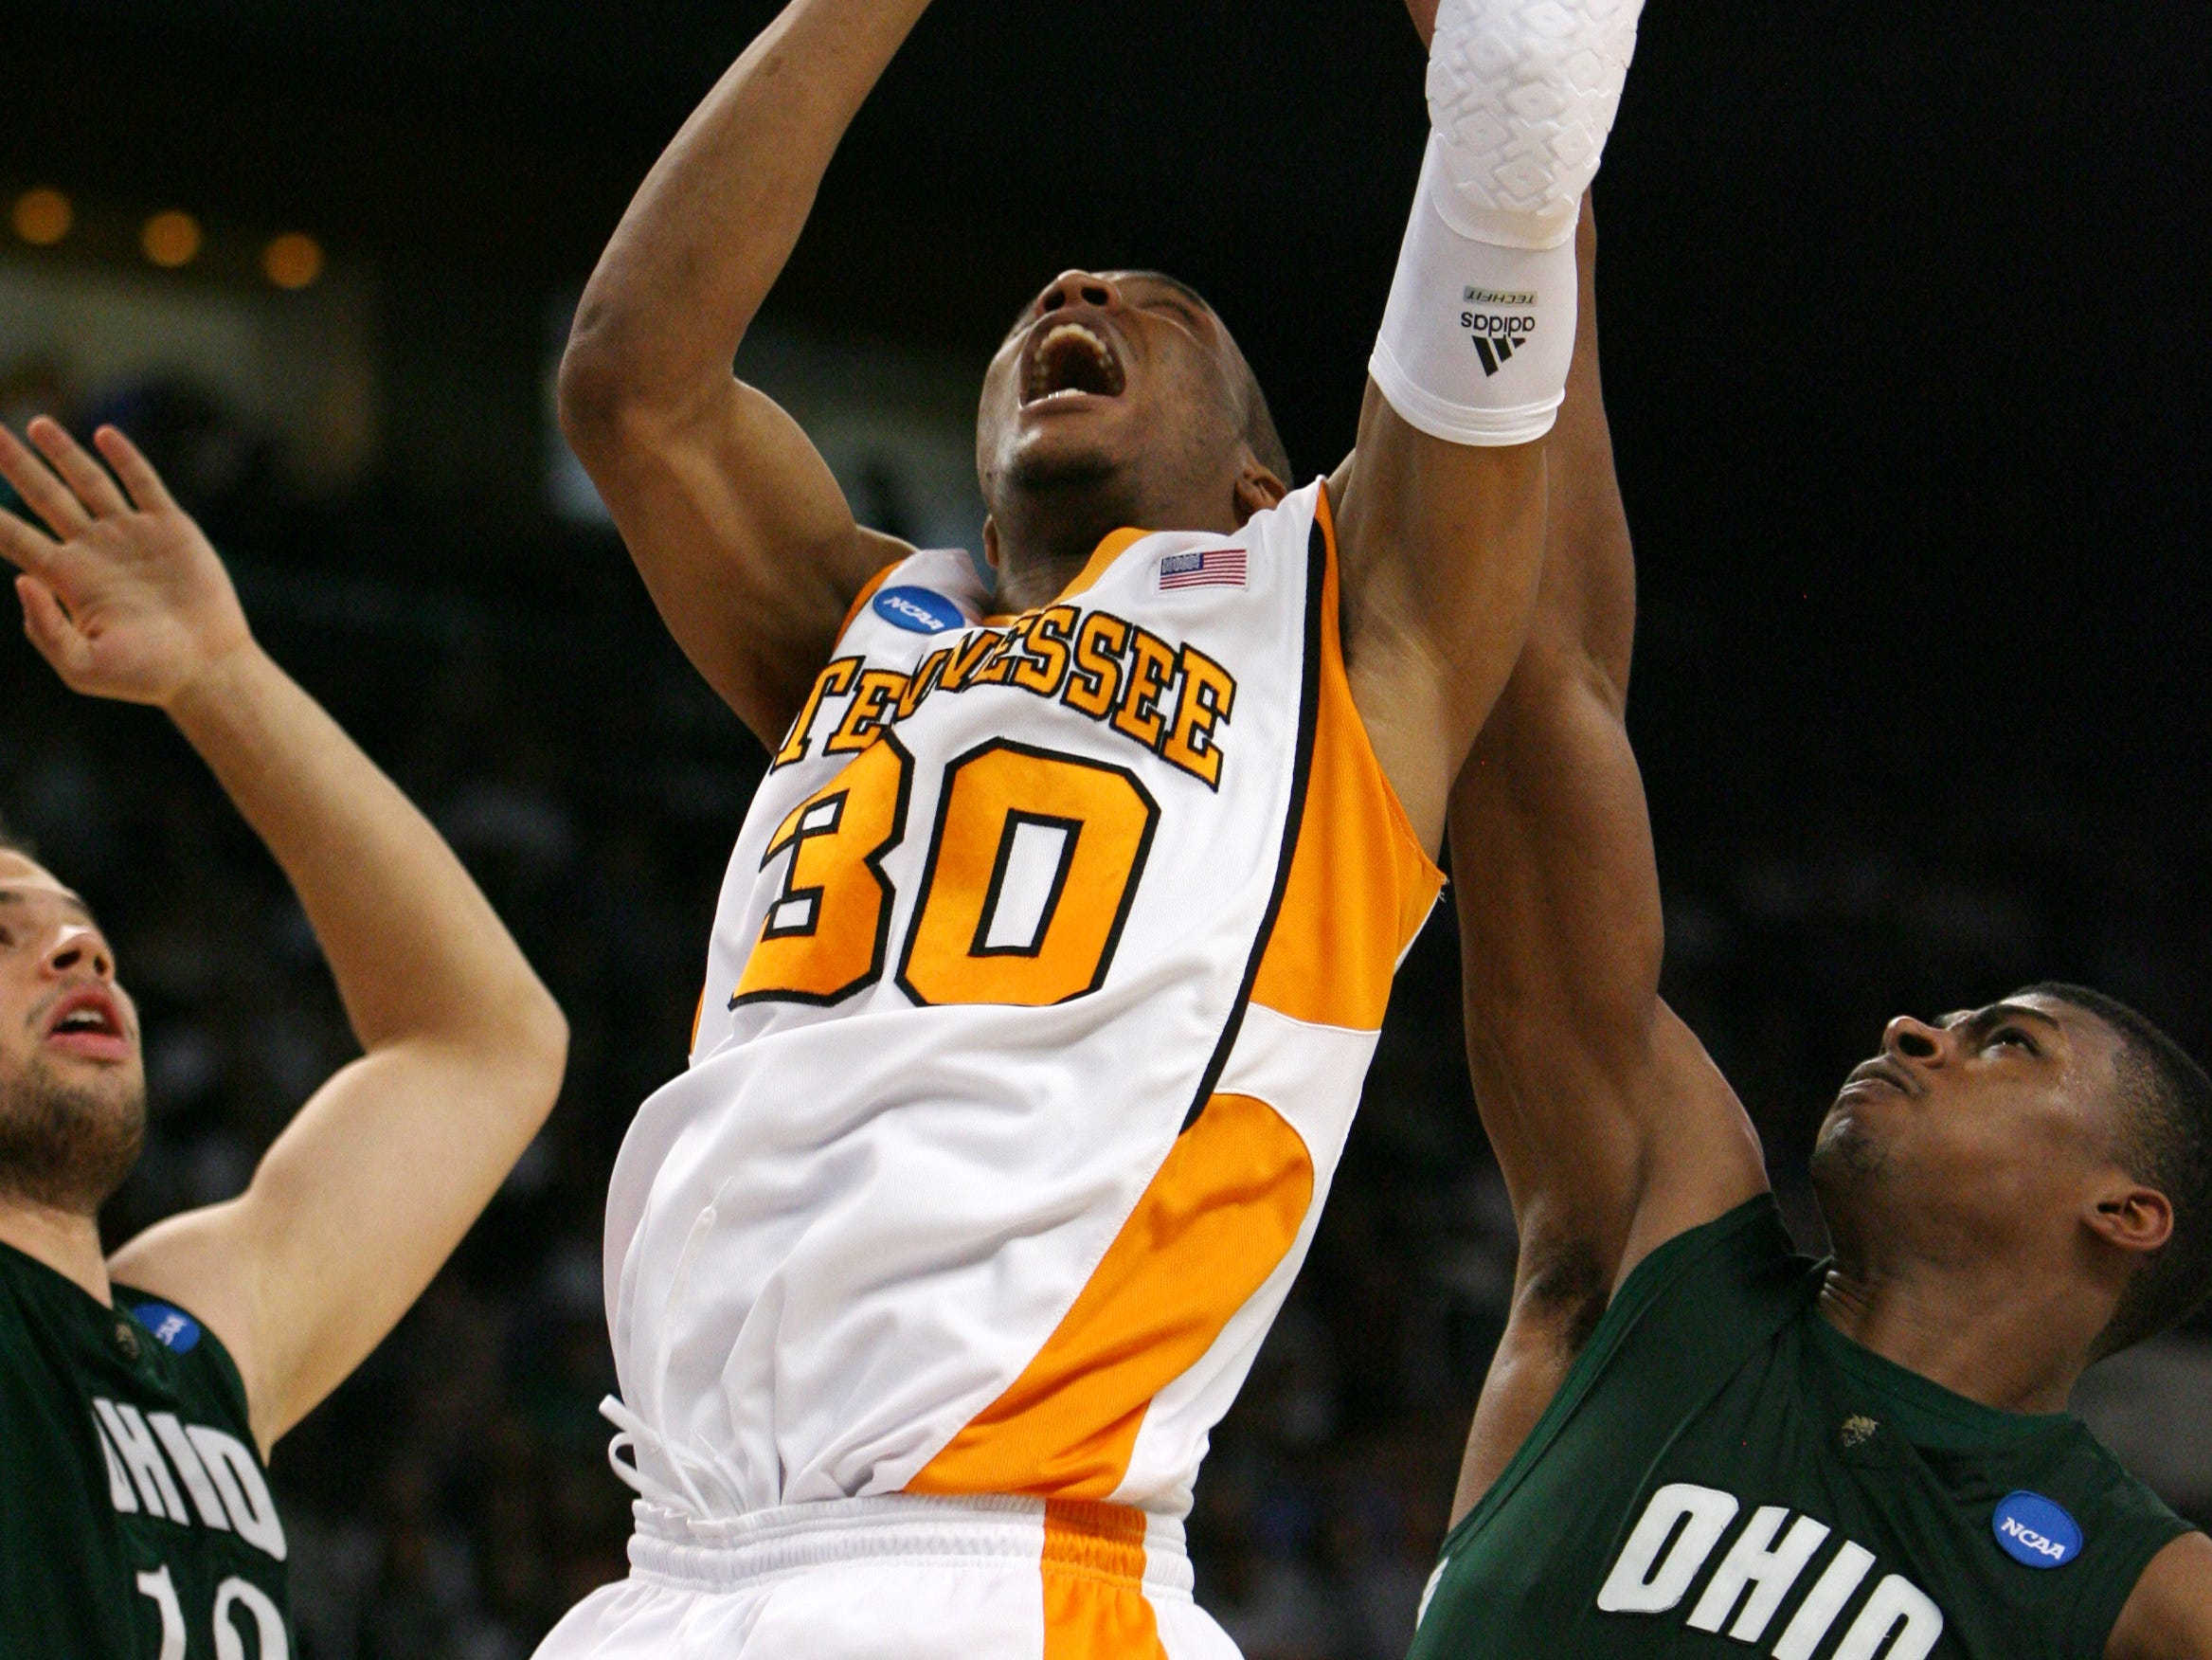 Tennessee's J.P. Prince goes in for a basket as Ohio's Kenneth van Kempen, left, and DeVaughn Washington, right, defend during the second round of the NCAA tournament in Providence, R.I. Saturday, Mar. 20, 2010.